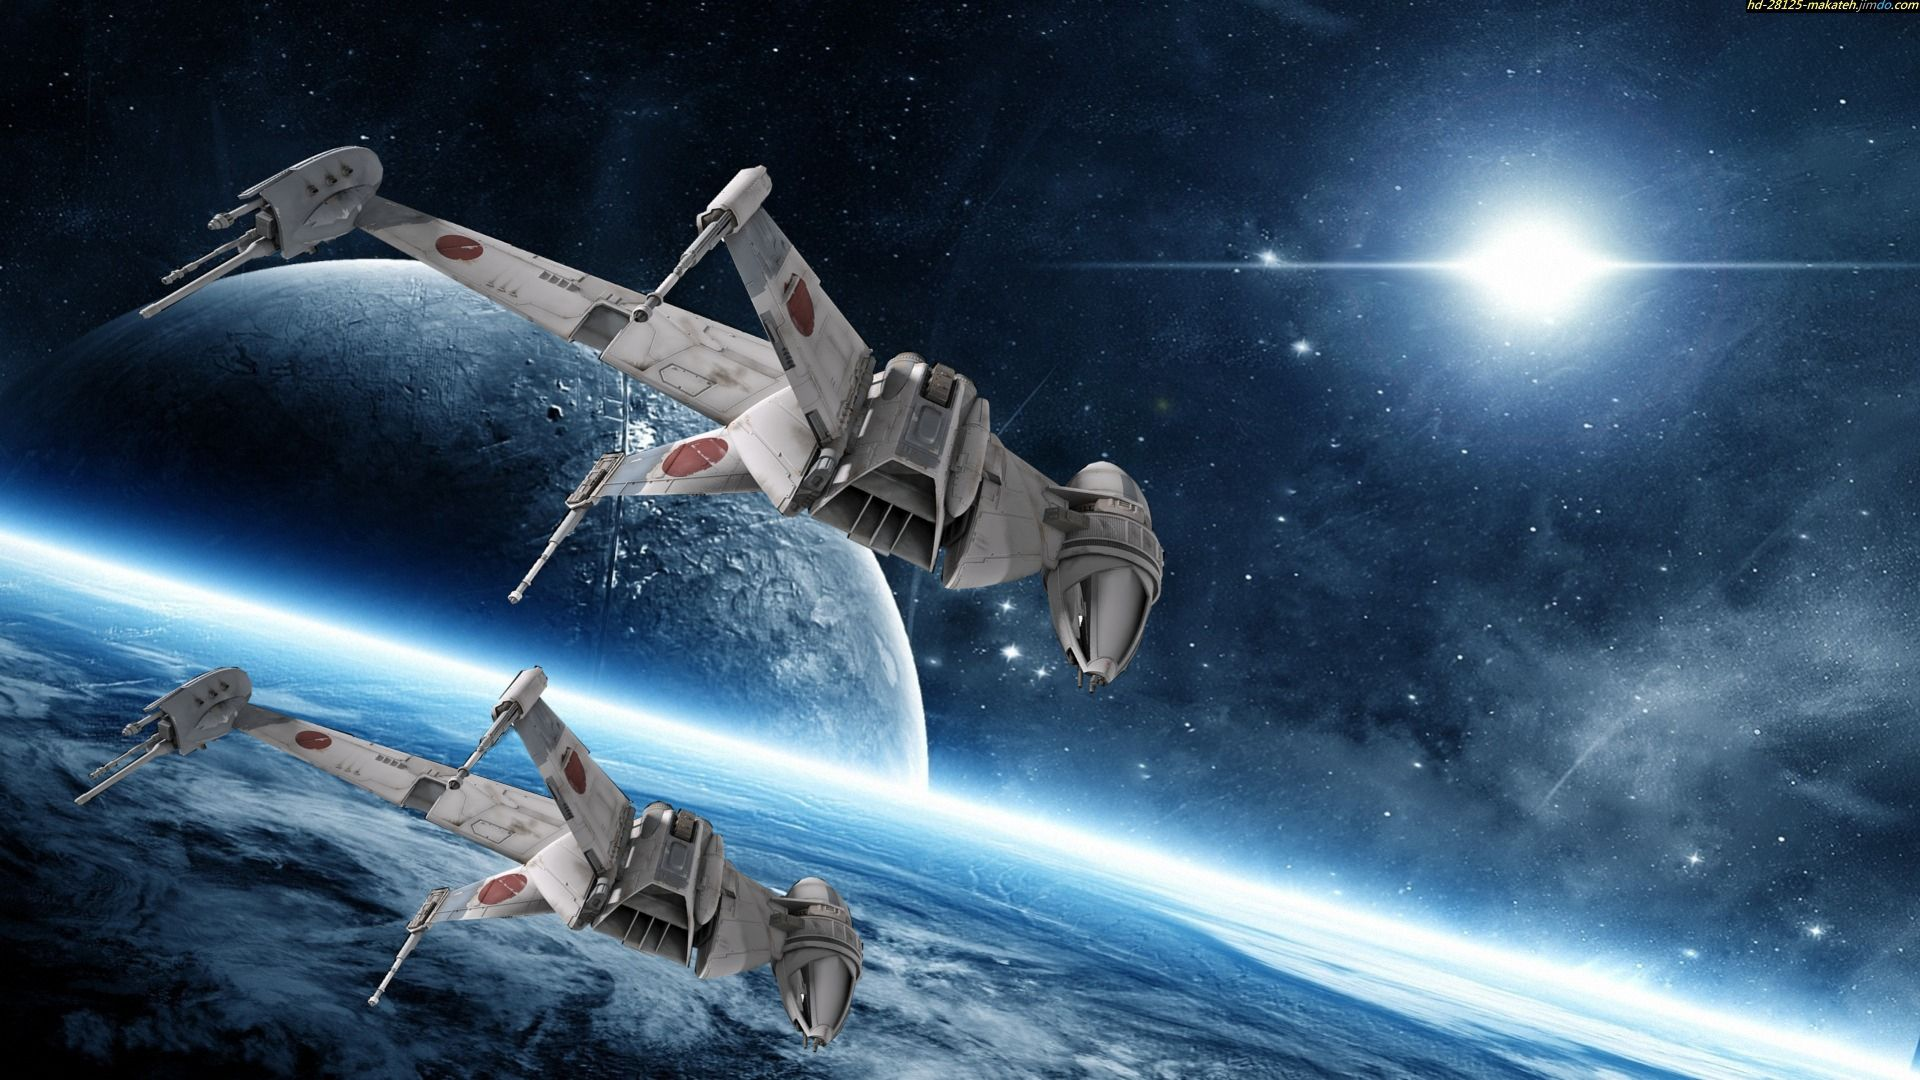 Space War Wallpaper Schepen